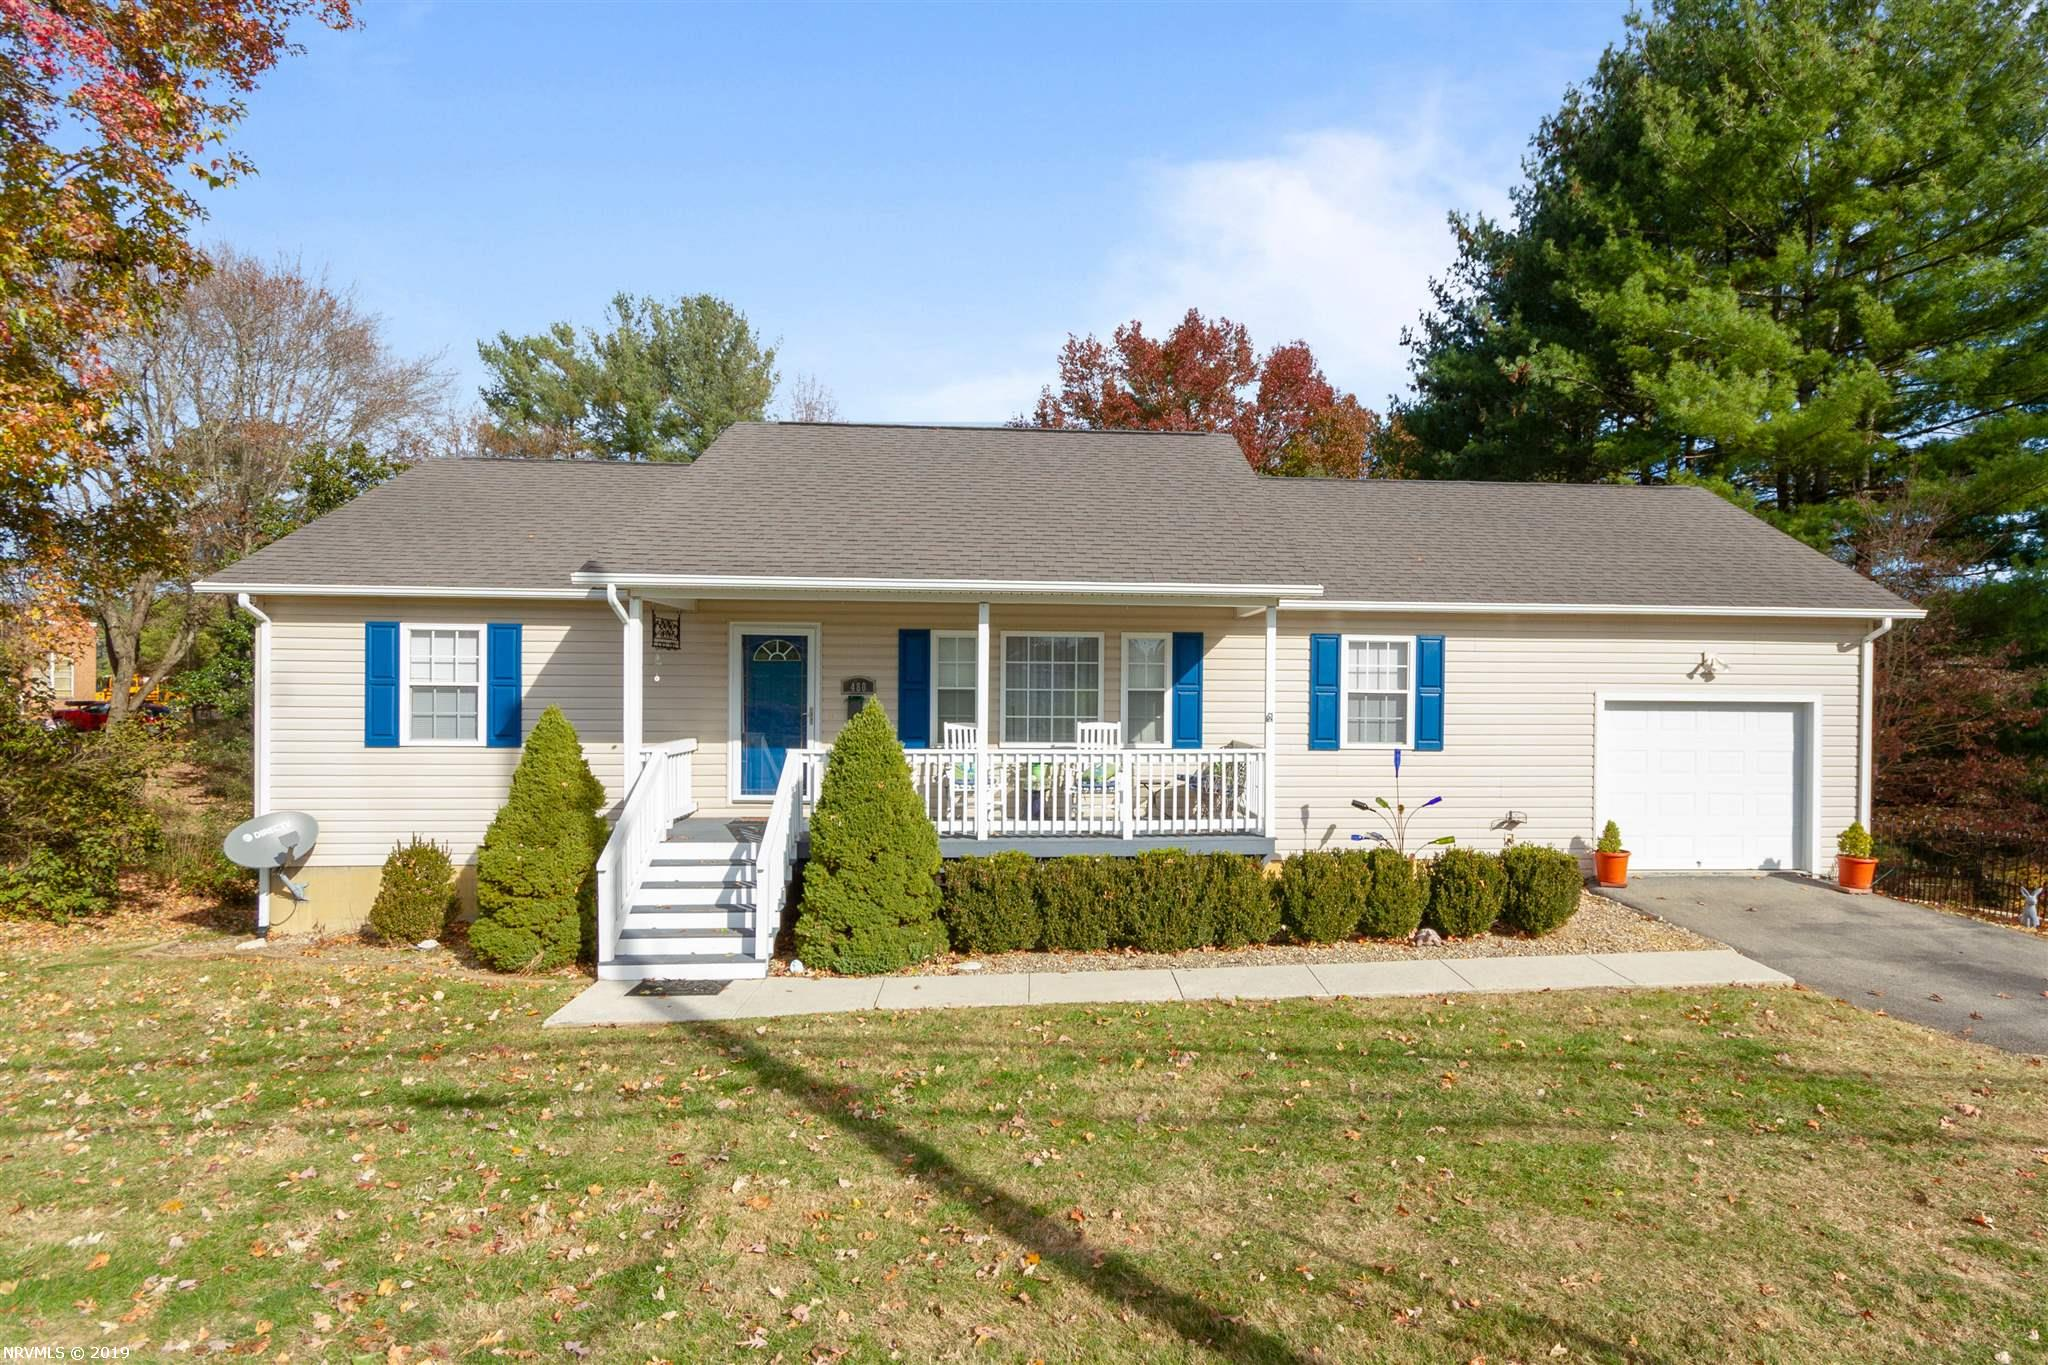 HOP, SKIP & JUMP FROM DUBLIN Middle School is this LIKE NEW 2008  Contemporary Ranch. Walk the kids to school & enjoy the convenience of this 3 Bedroom, 2 Bath home with Full Basement. Extras - LARGE Back Yard, Paved Driveway, Attached Single Garage, Generac Generator. Vaulted Ceilings in LR, Kitchen & DR. Master Suite With Walk-In Closet & Master Bath Room. All of the Stainless Steel appliances of Range, Ref., DW, MW & Disposal are Included. You Will Love the Hardwood Floors in LR & DR. Covered Front Porch & Remodeled Rear Deck off Dining Room.  This IMMACULATE HOME WILL NOT LAST LONG - Come See TODAY! Seller will leave Mini-Blinds & Generac Generator. Rented Propane Tank from SW Va. Gas Service. Basement has HIGH Ceiling, Walk-Out to Patio under Deck & Active Radon System. EXTRA Storage under Garage with plastic vapor barrier over dirt. Laundry Room has Pantry & Utility Closet. Garage has handicapped ramp which could be removed & Garage Door Opener.